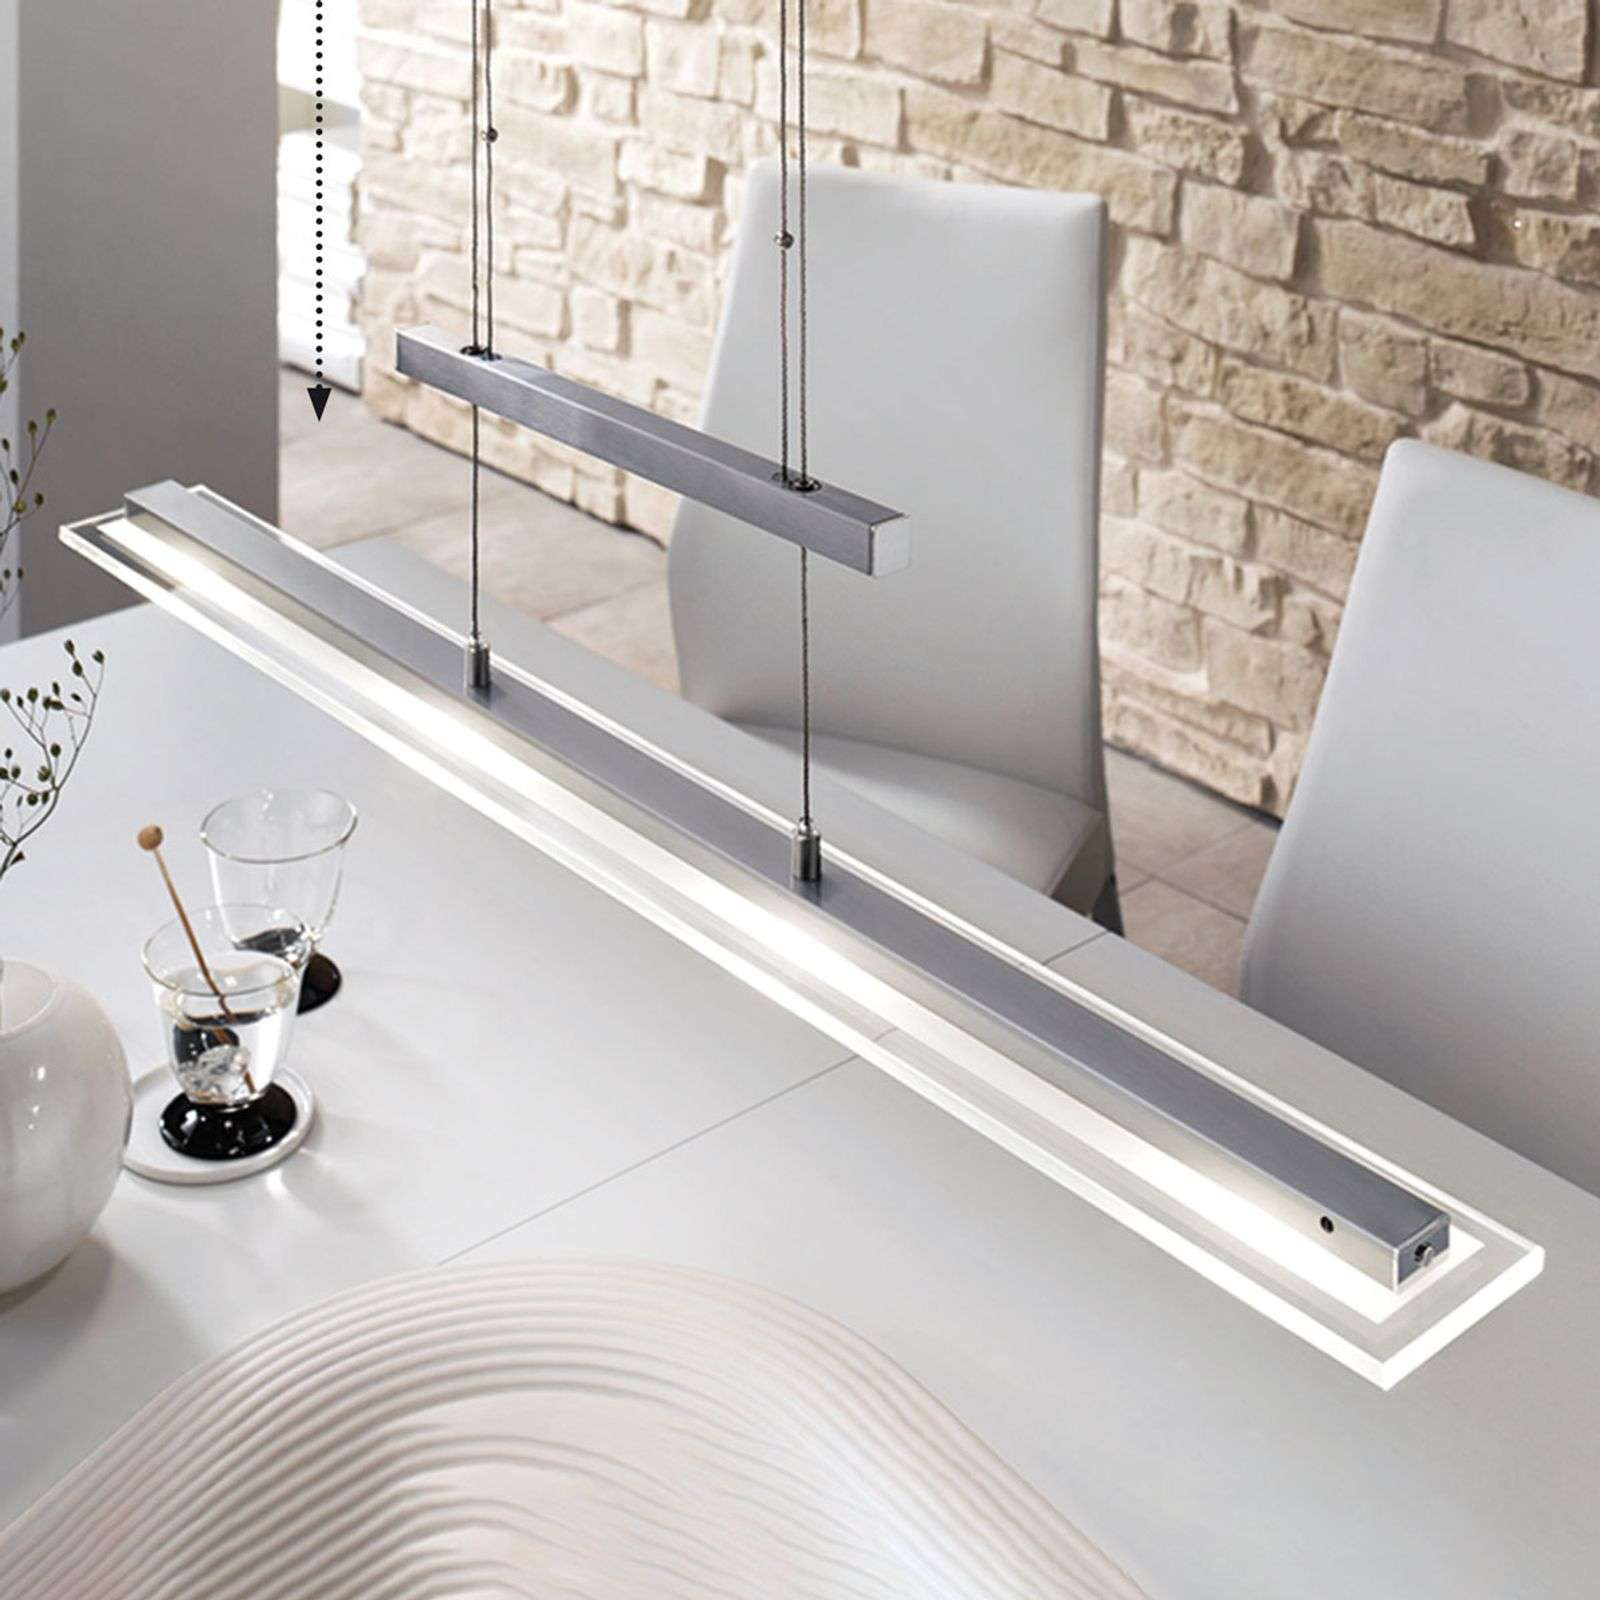 Lámpara colgante LED Tenso tunable white, 88 cm